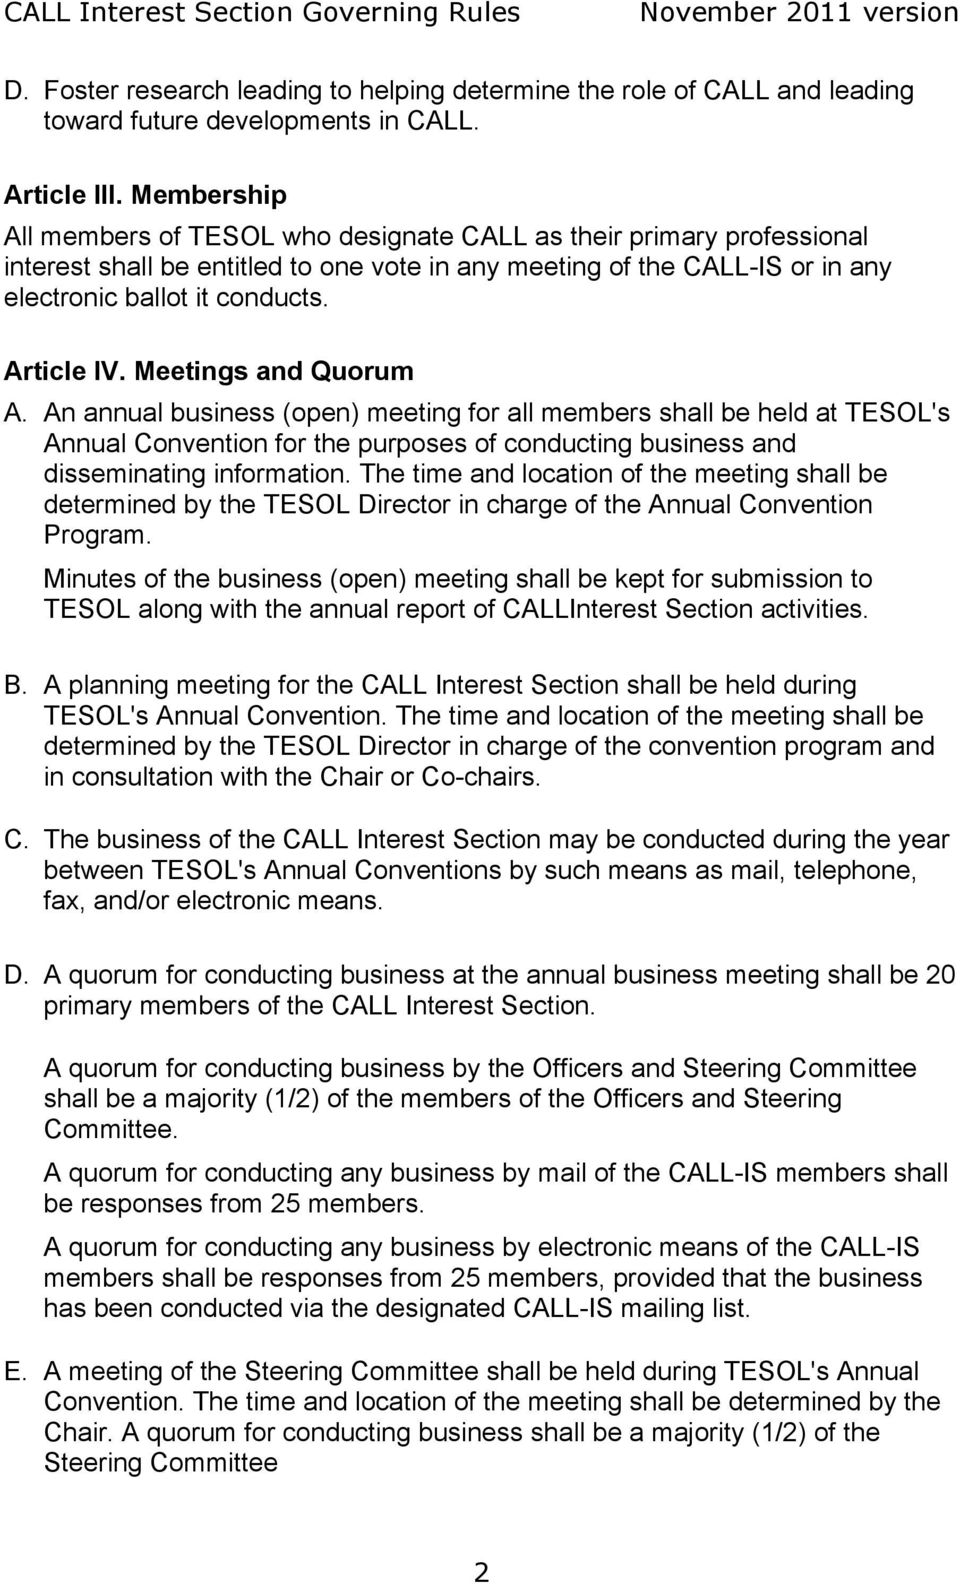 Article IV. Meetings and Quorum A. An annual business (open) meeting for all members shall be held at TESOL's Annual Convention for the purposes of conducting business and disseminating information.